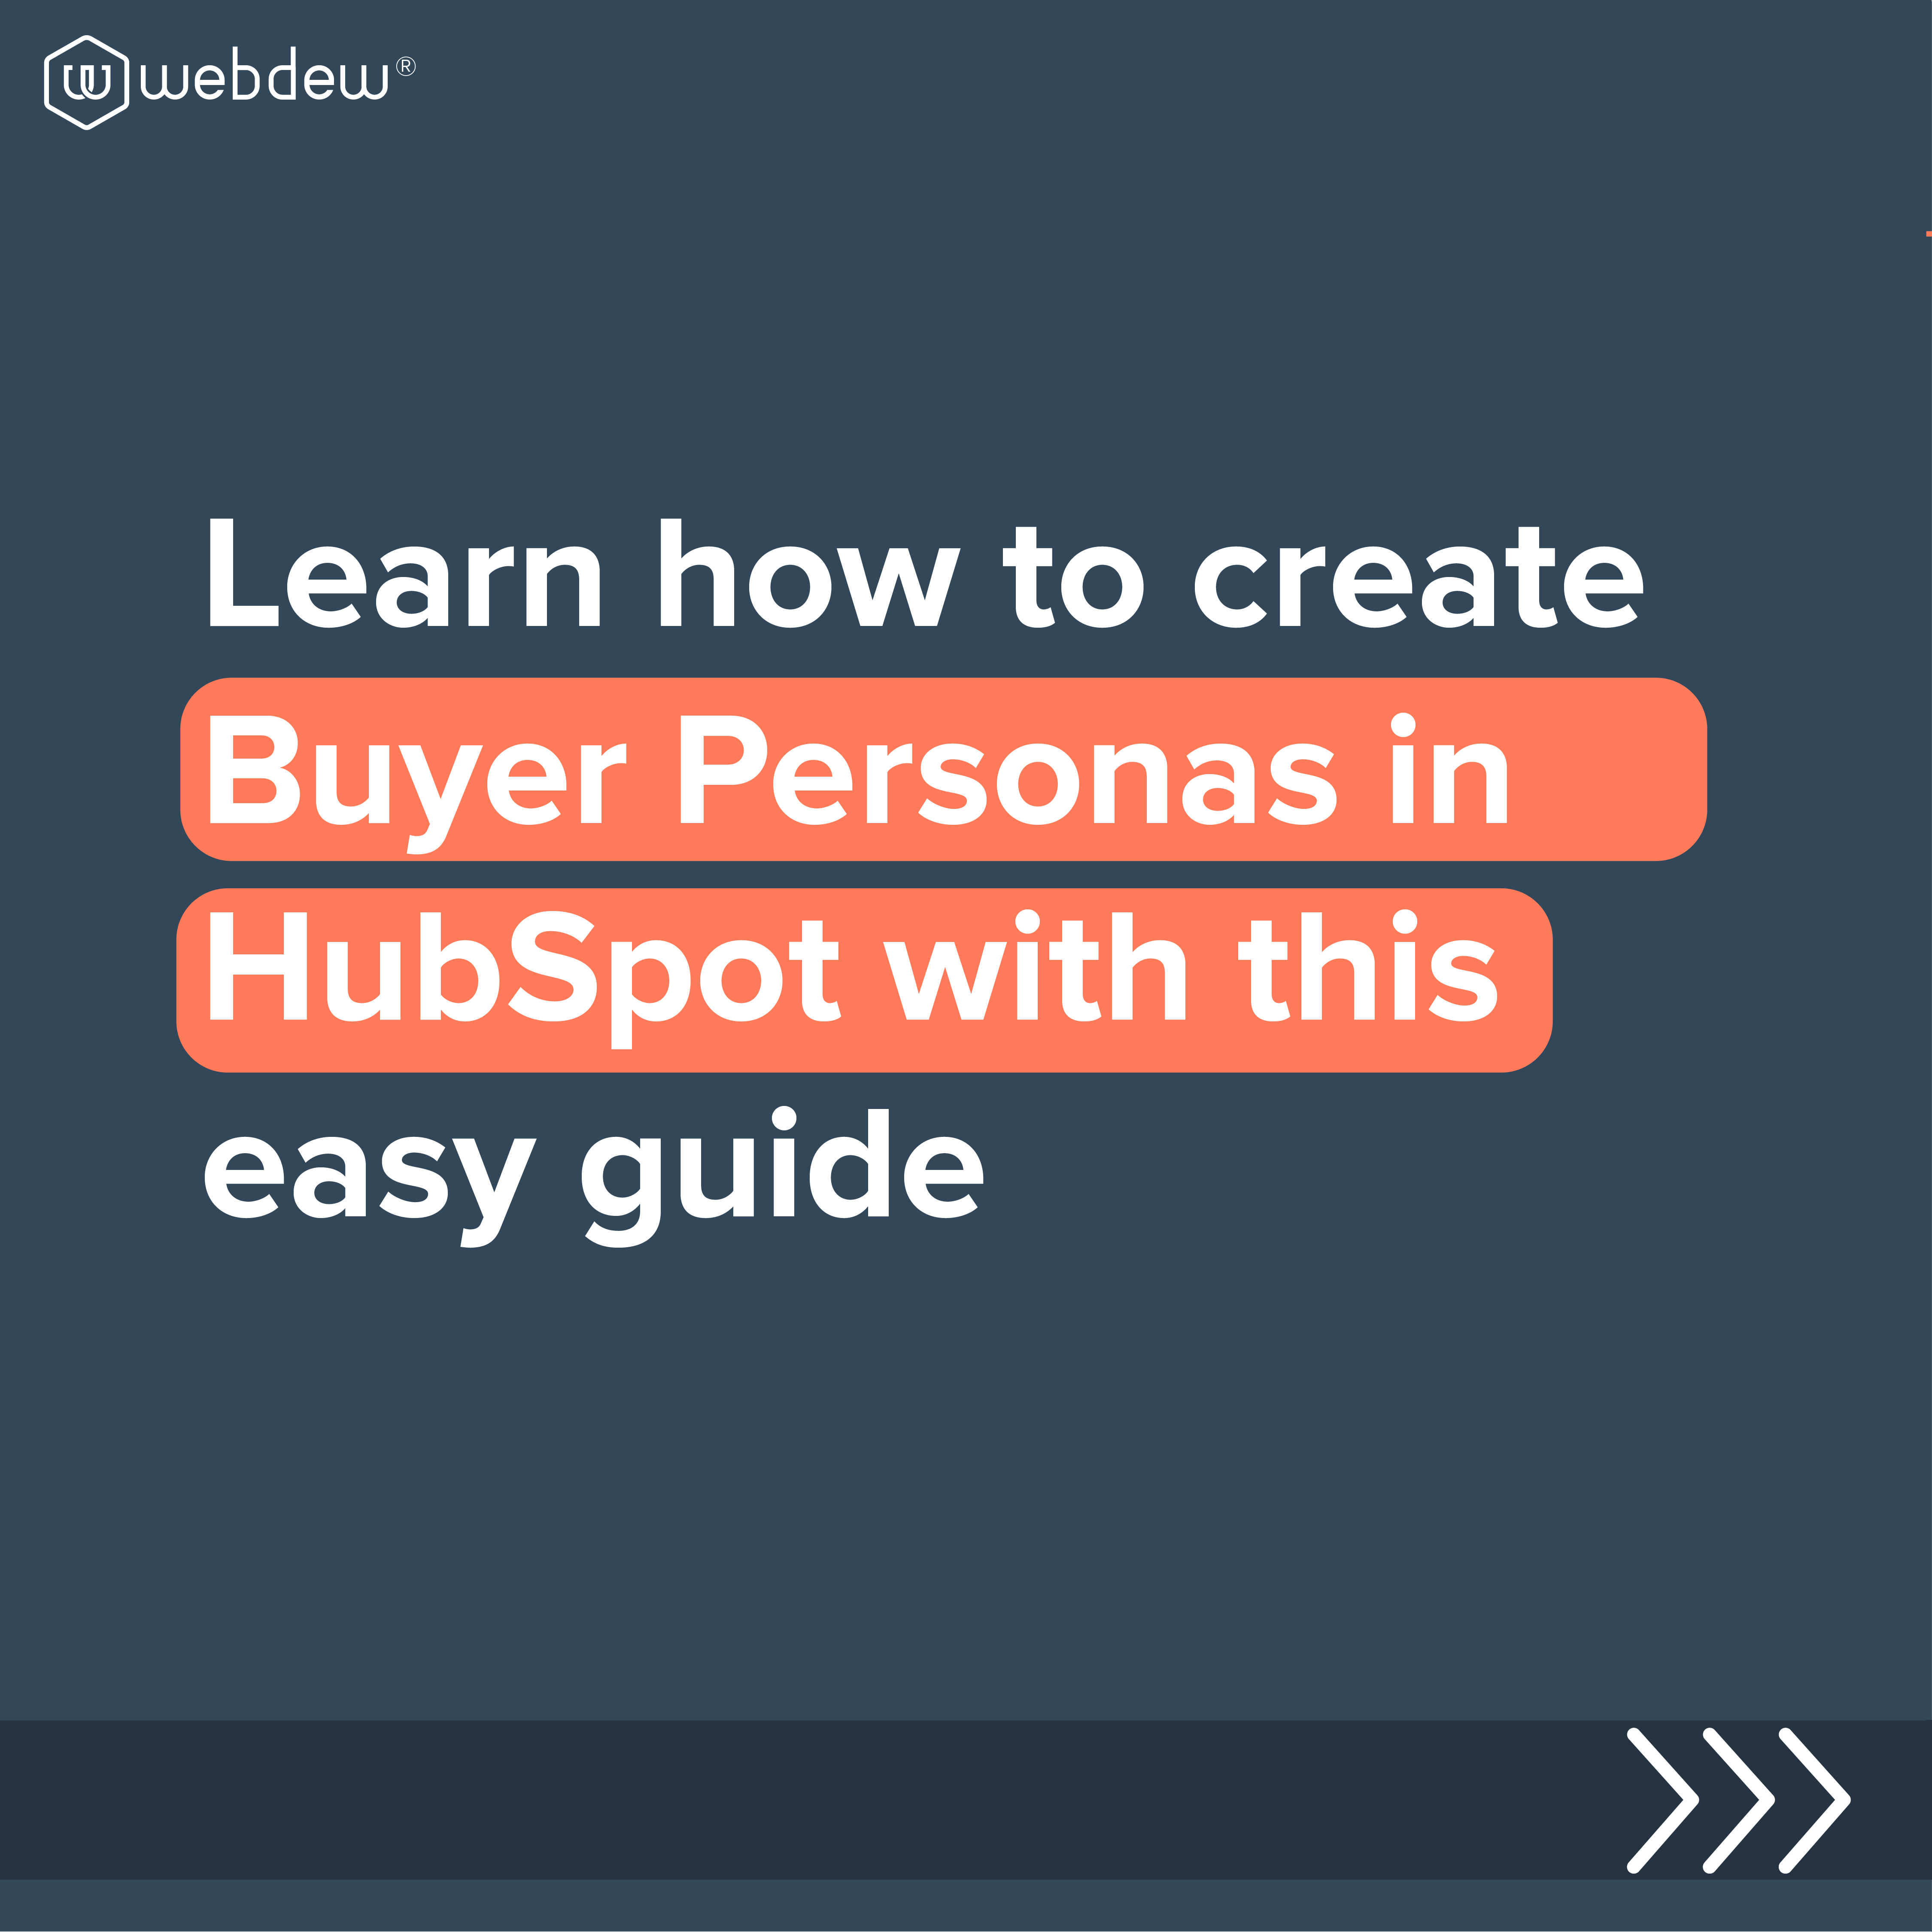 learn how to create buyer personas in hubspot with this easy guide-01